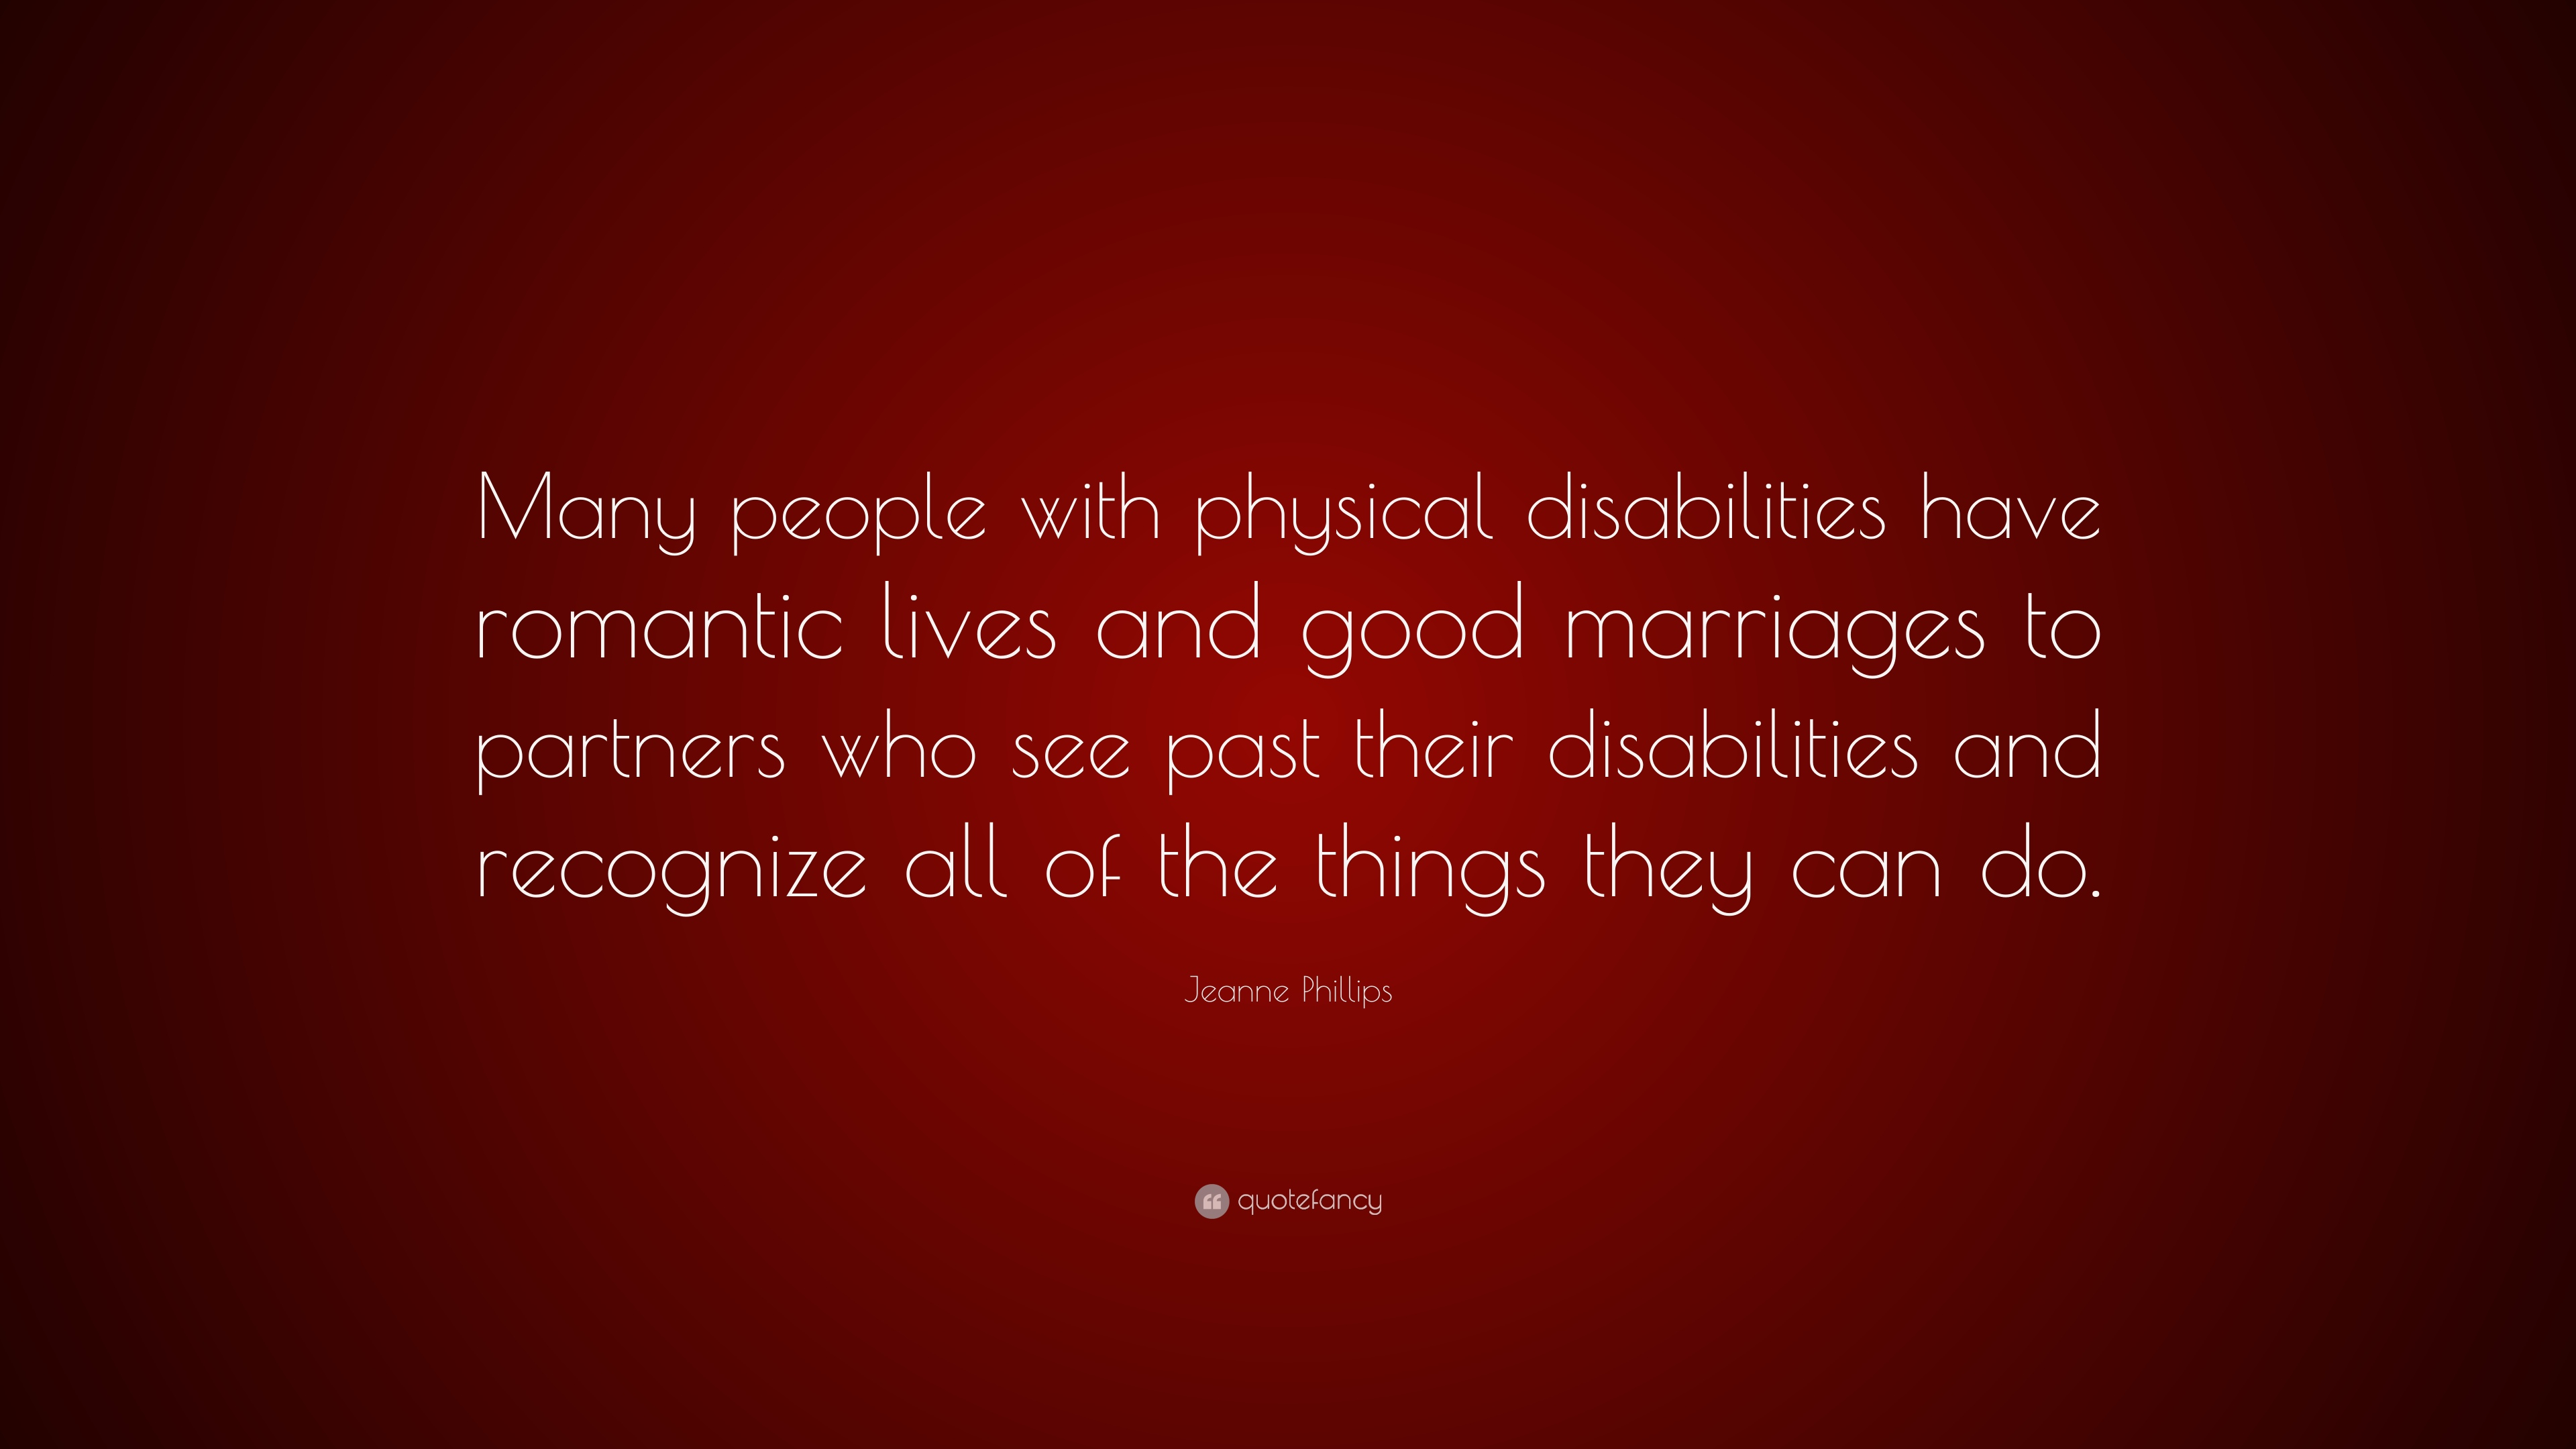 Quotes About Disabilities Jeanne Phillips Quotes 24 Wallpapers  Quotefancy